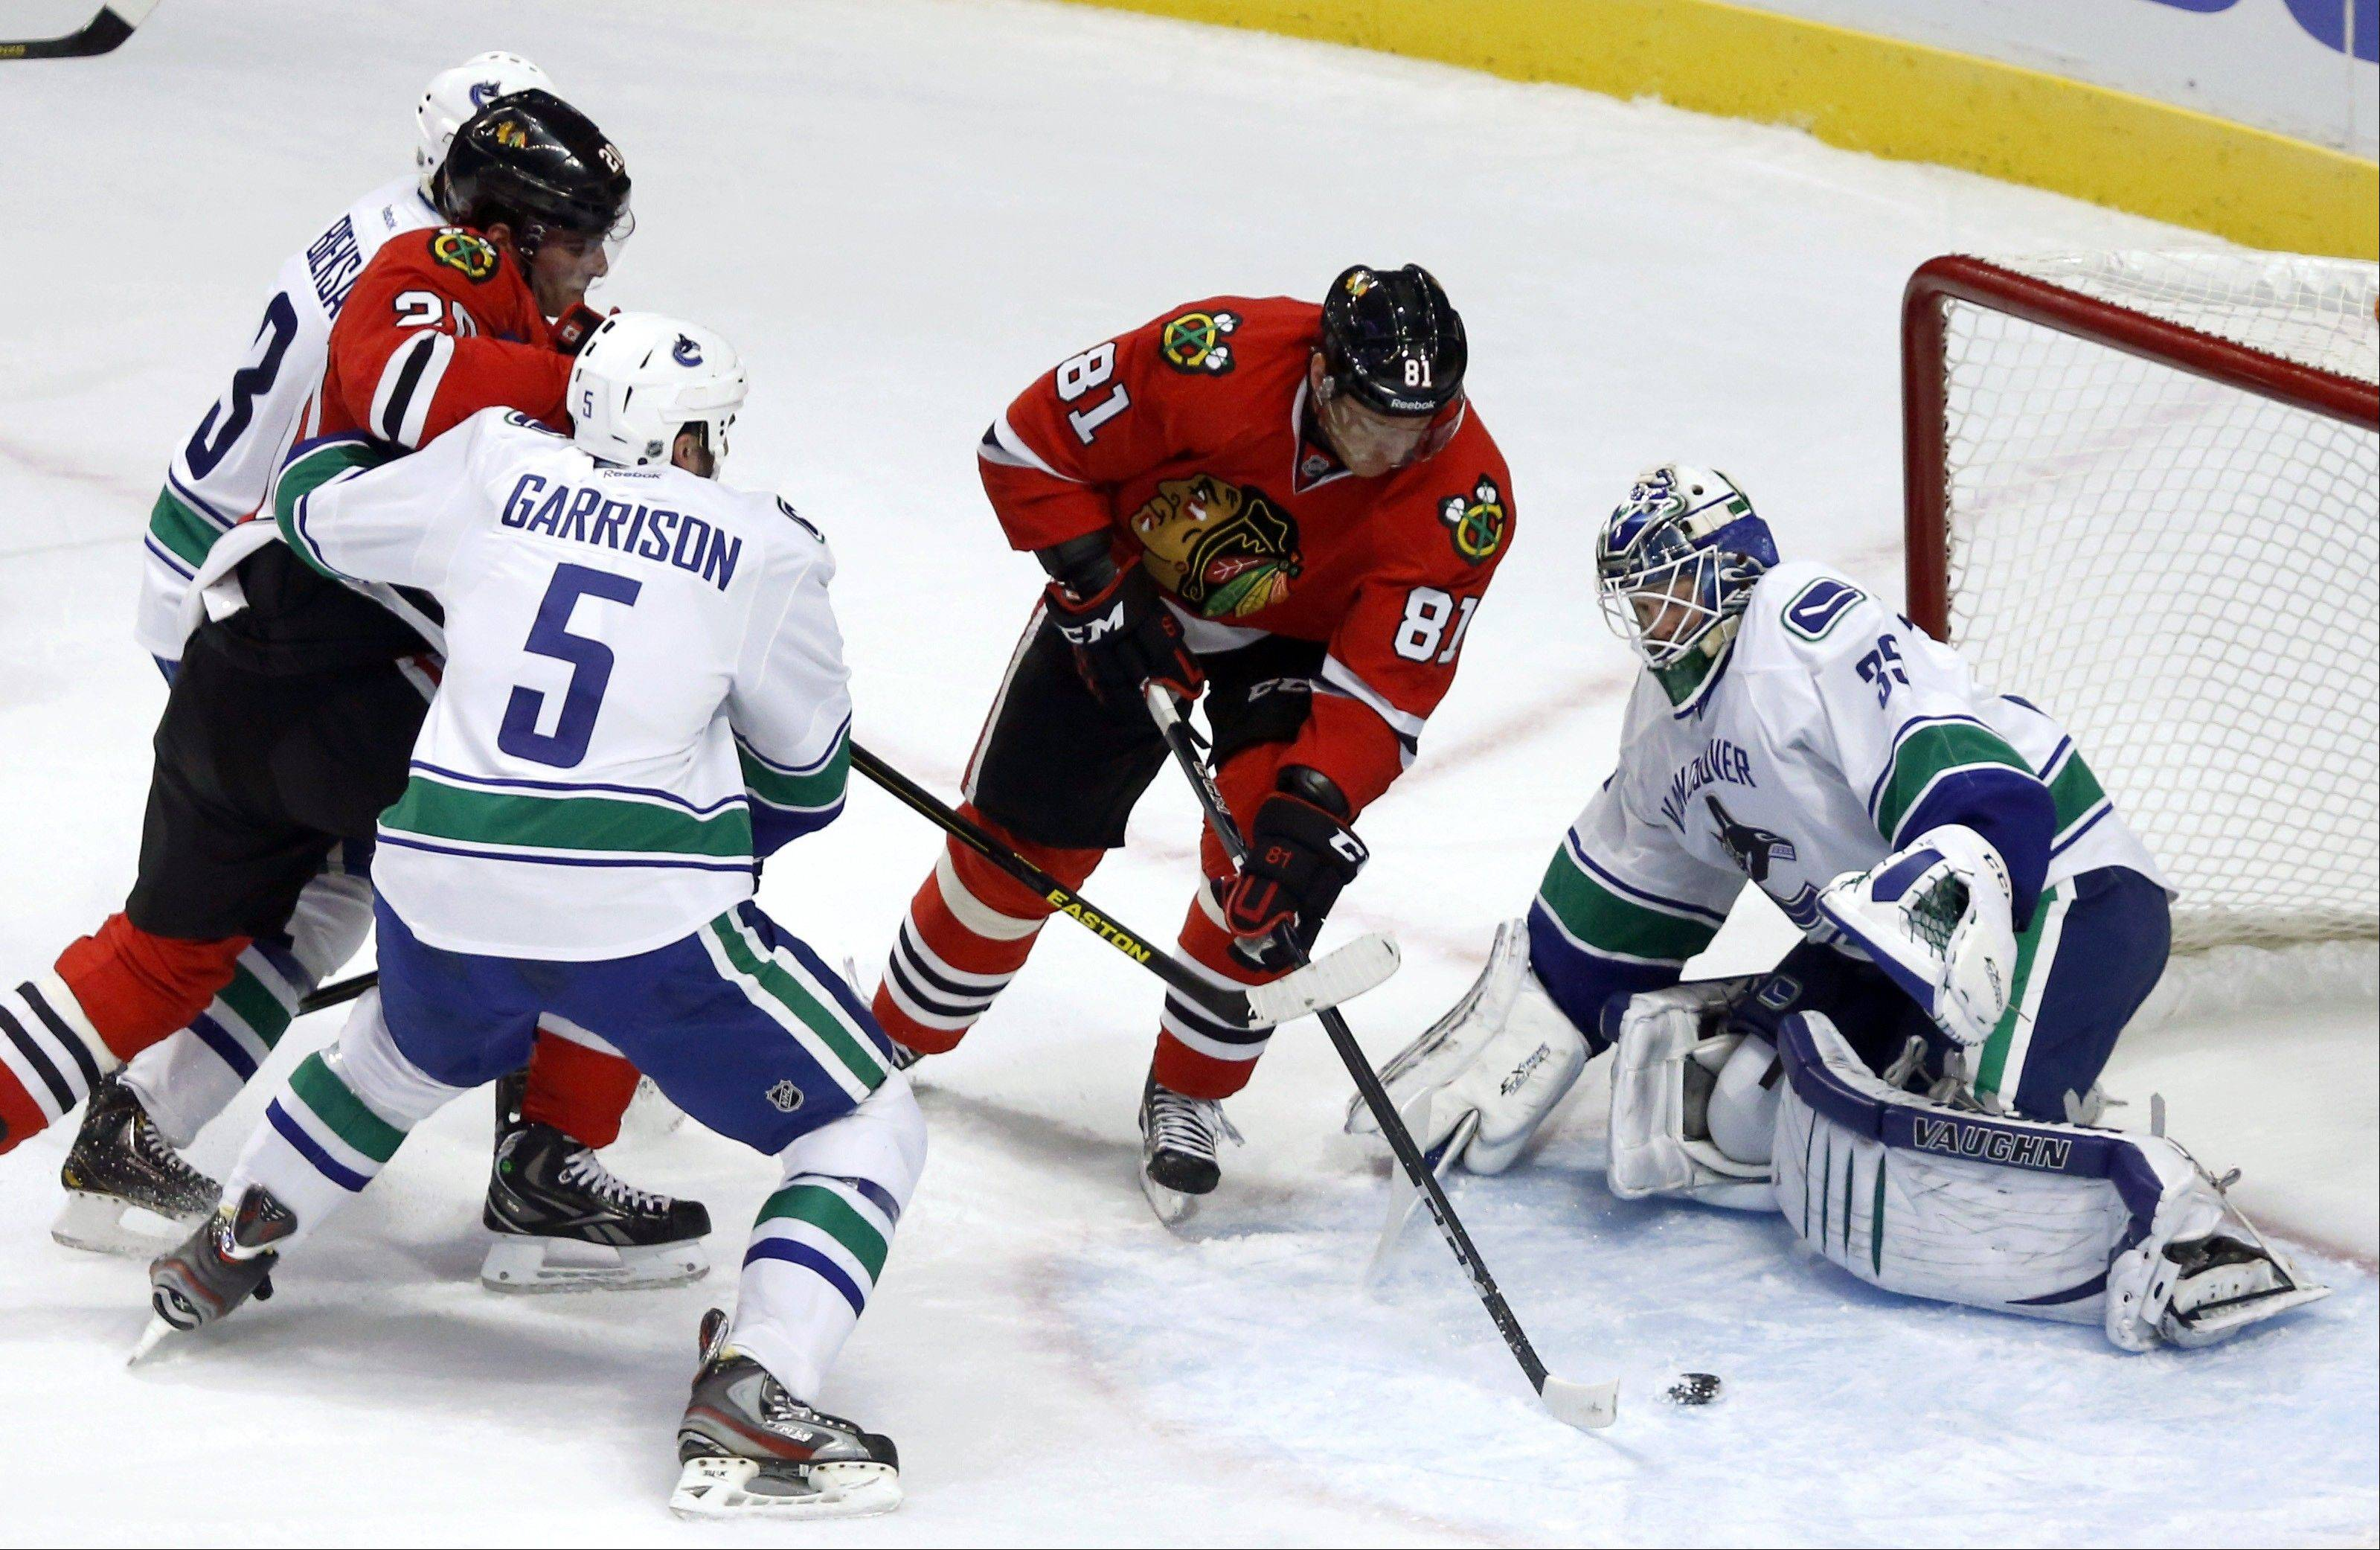 Chicago Blackhawks right wing Marian Hossa splits the defense of Vancouver Canucks� Kevin Bieksa, Jason Garrison and goalie Cory Schneider to score his second goal in the second period .